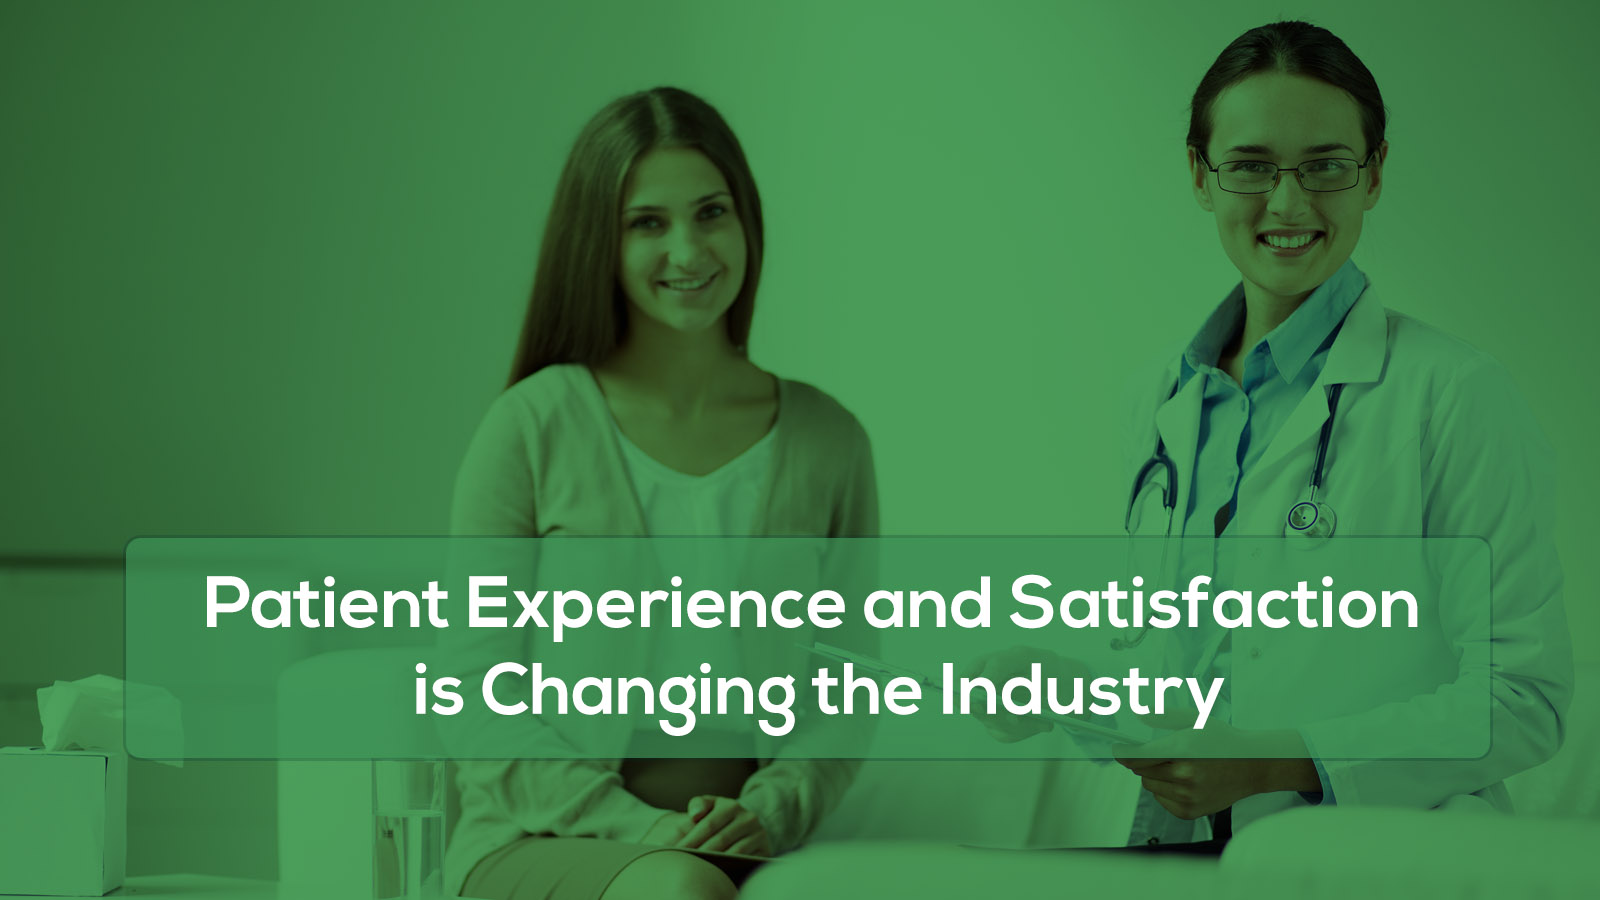 Patient Experience and Satisfaction is Changing the Industry